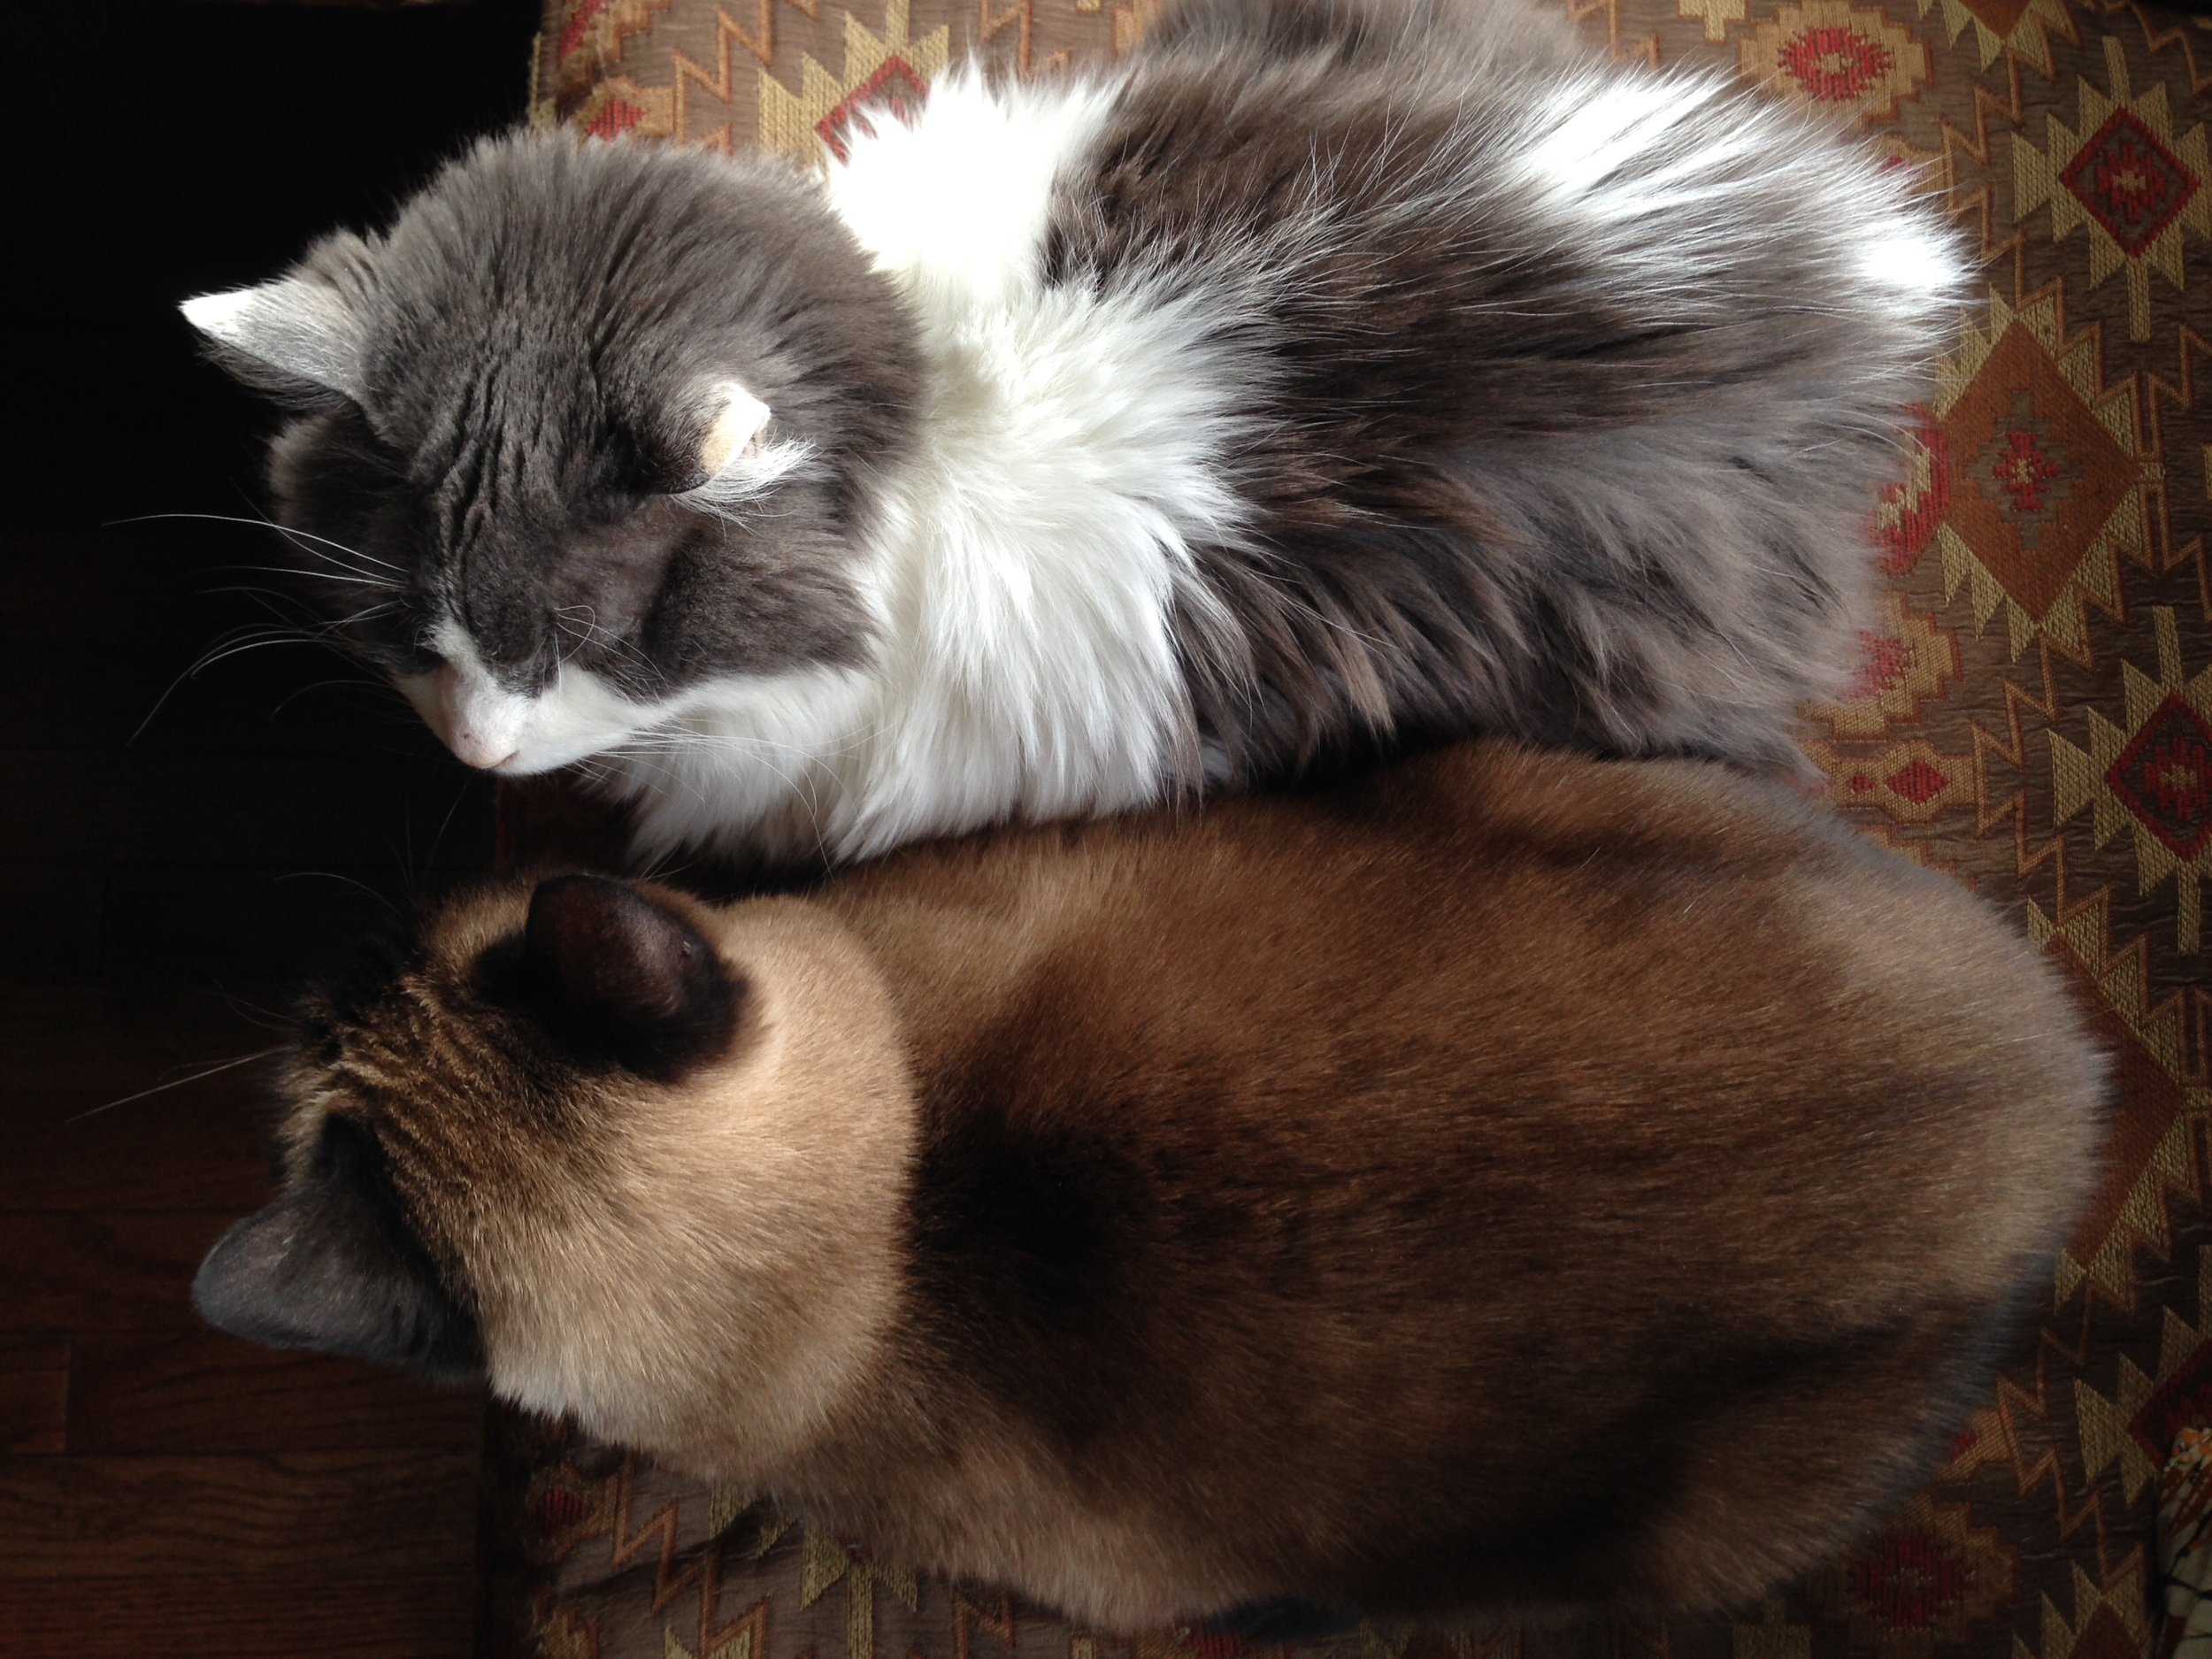 Gratuitous photo of those darned cats